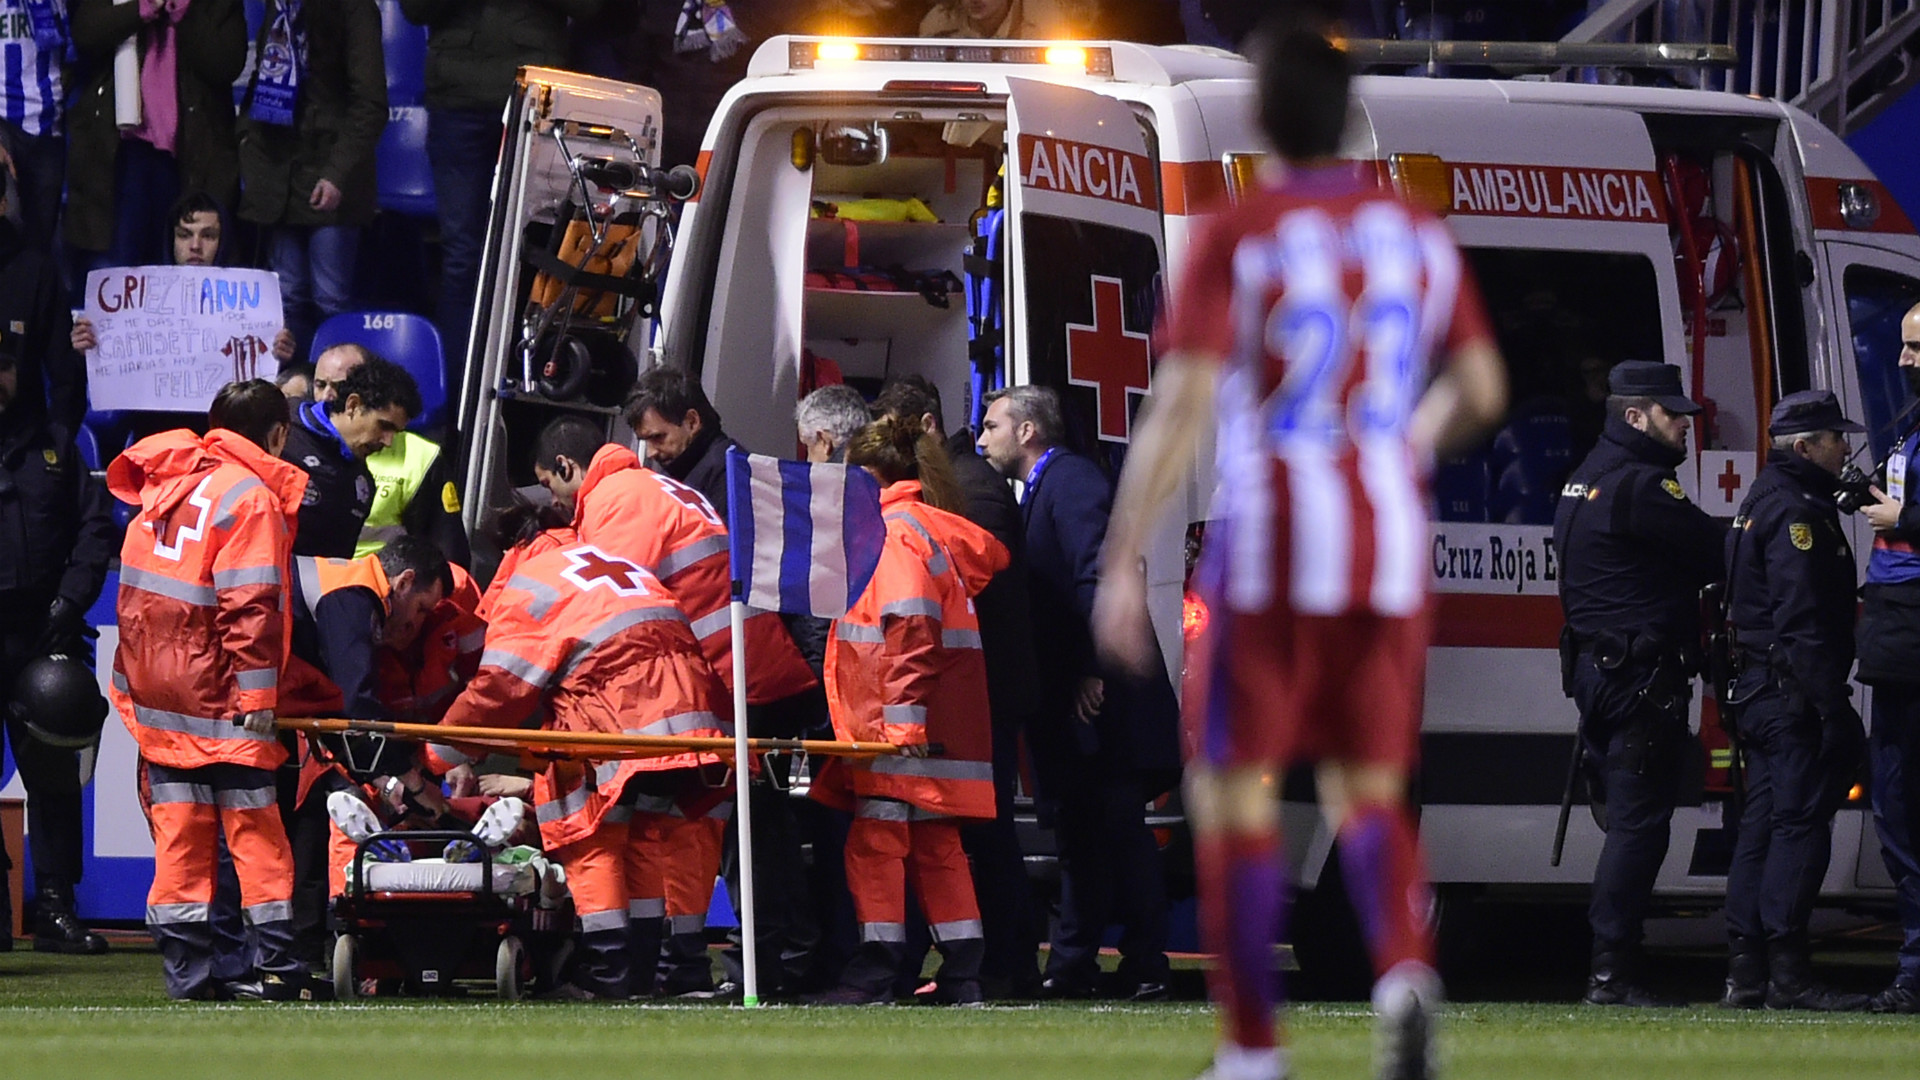 Torres suffers horrific head injury after collision in Atletico Madrid draw